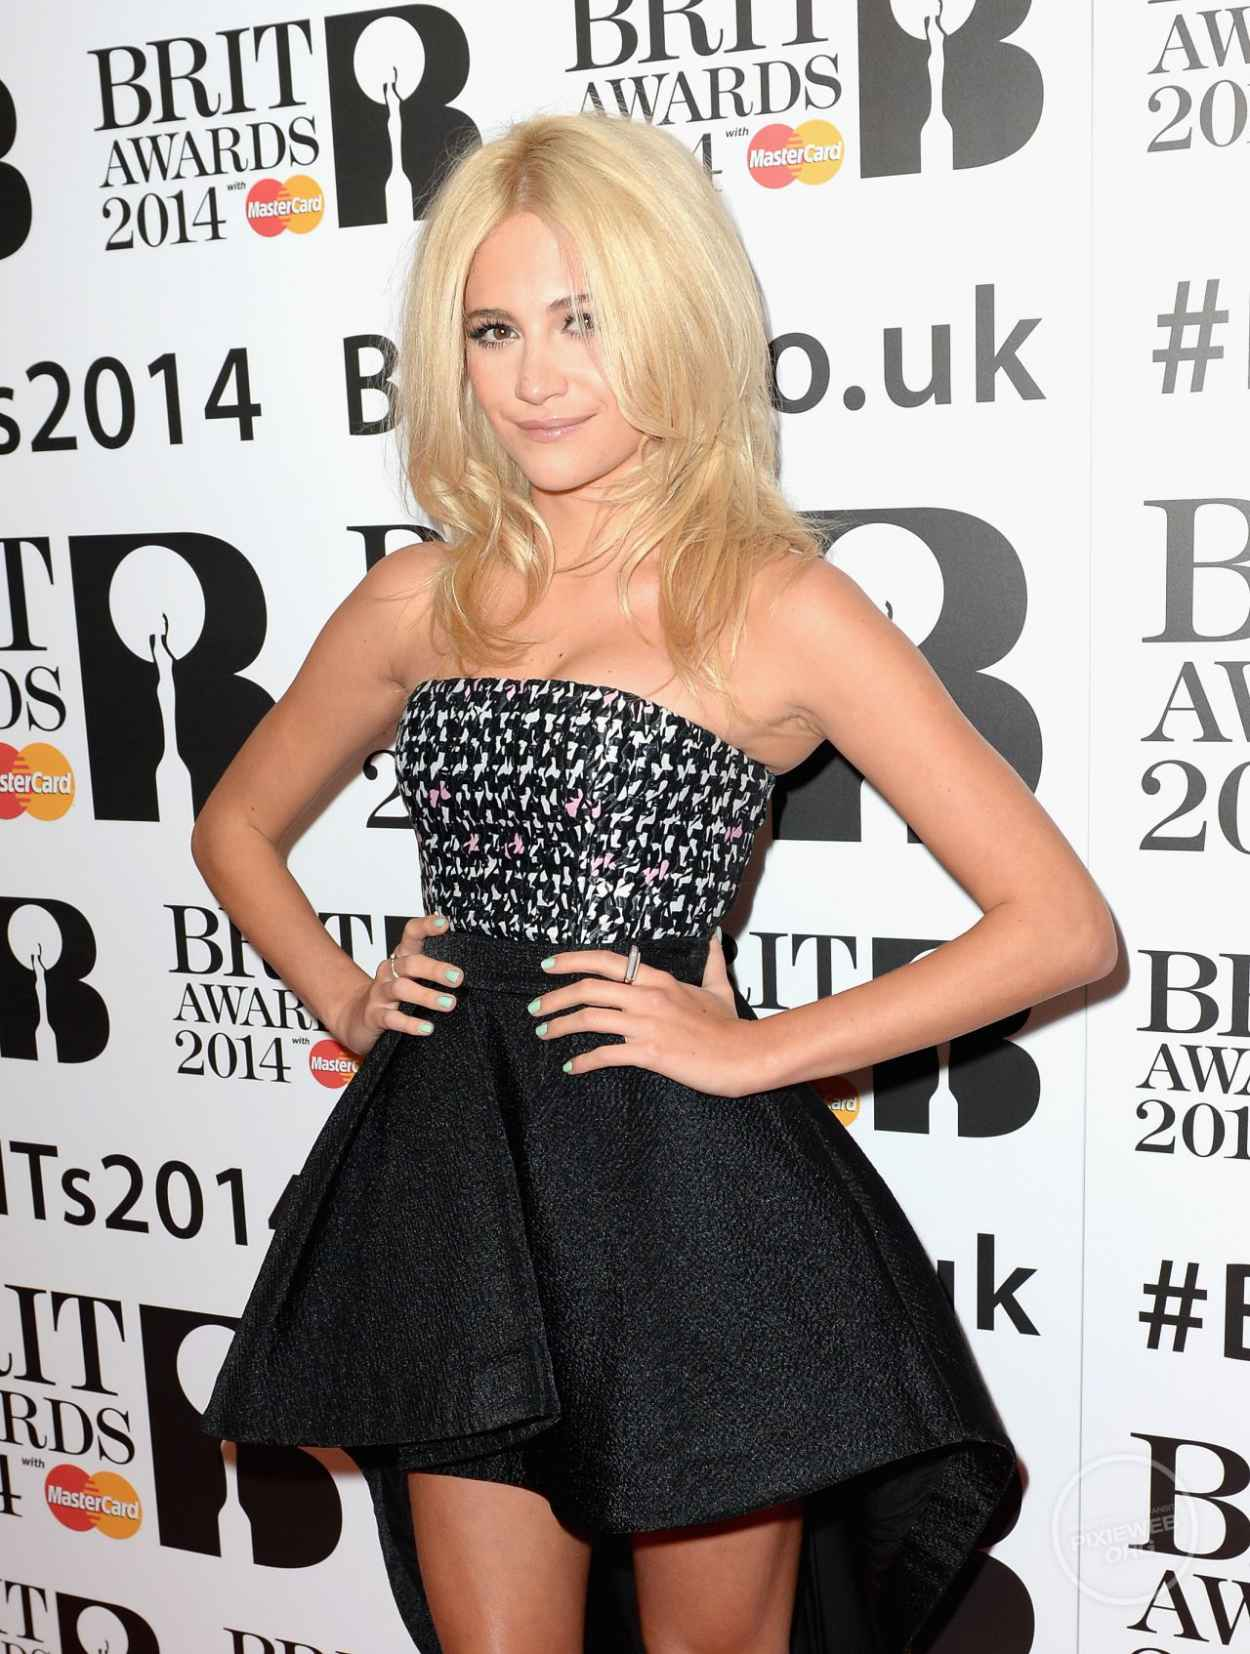 Pixie Lott on Red Carpet - The BRITs Are Coming, January 2015-1